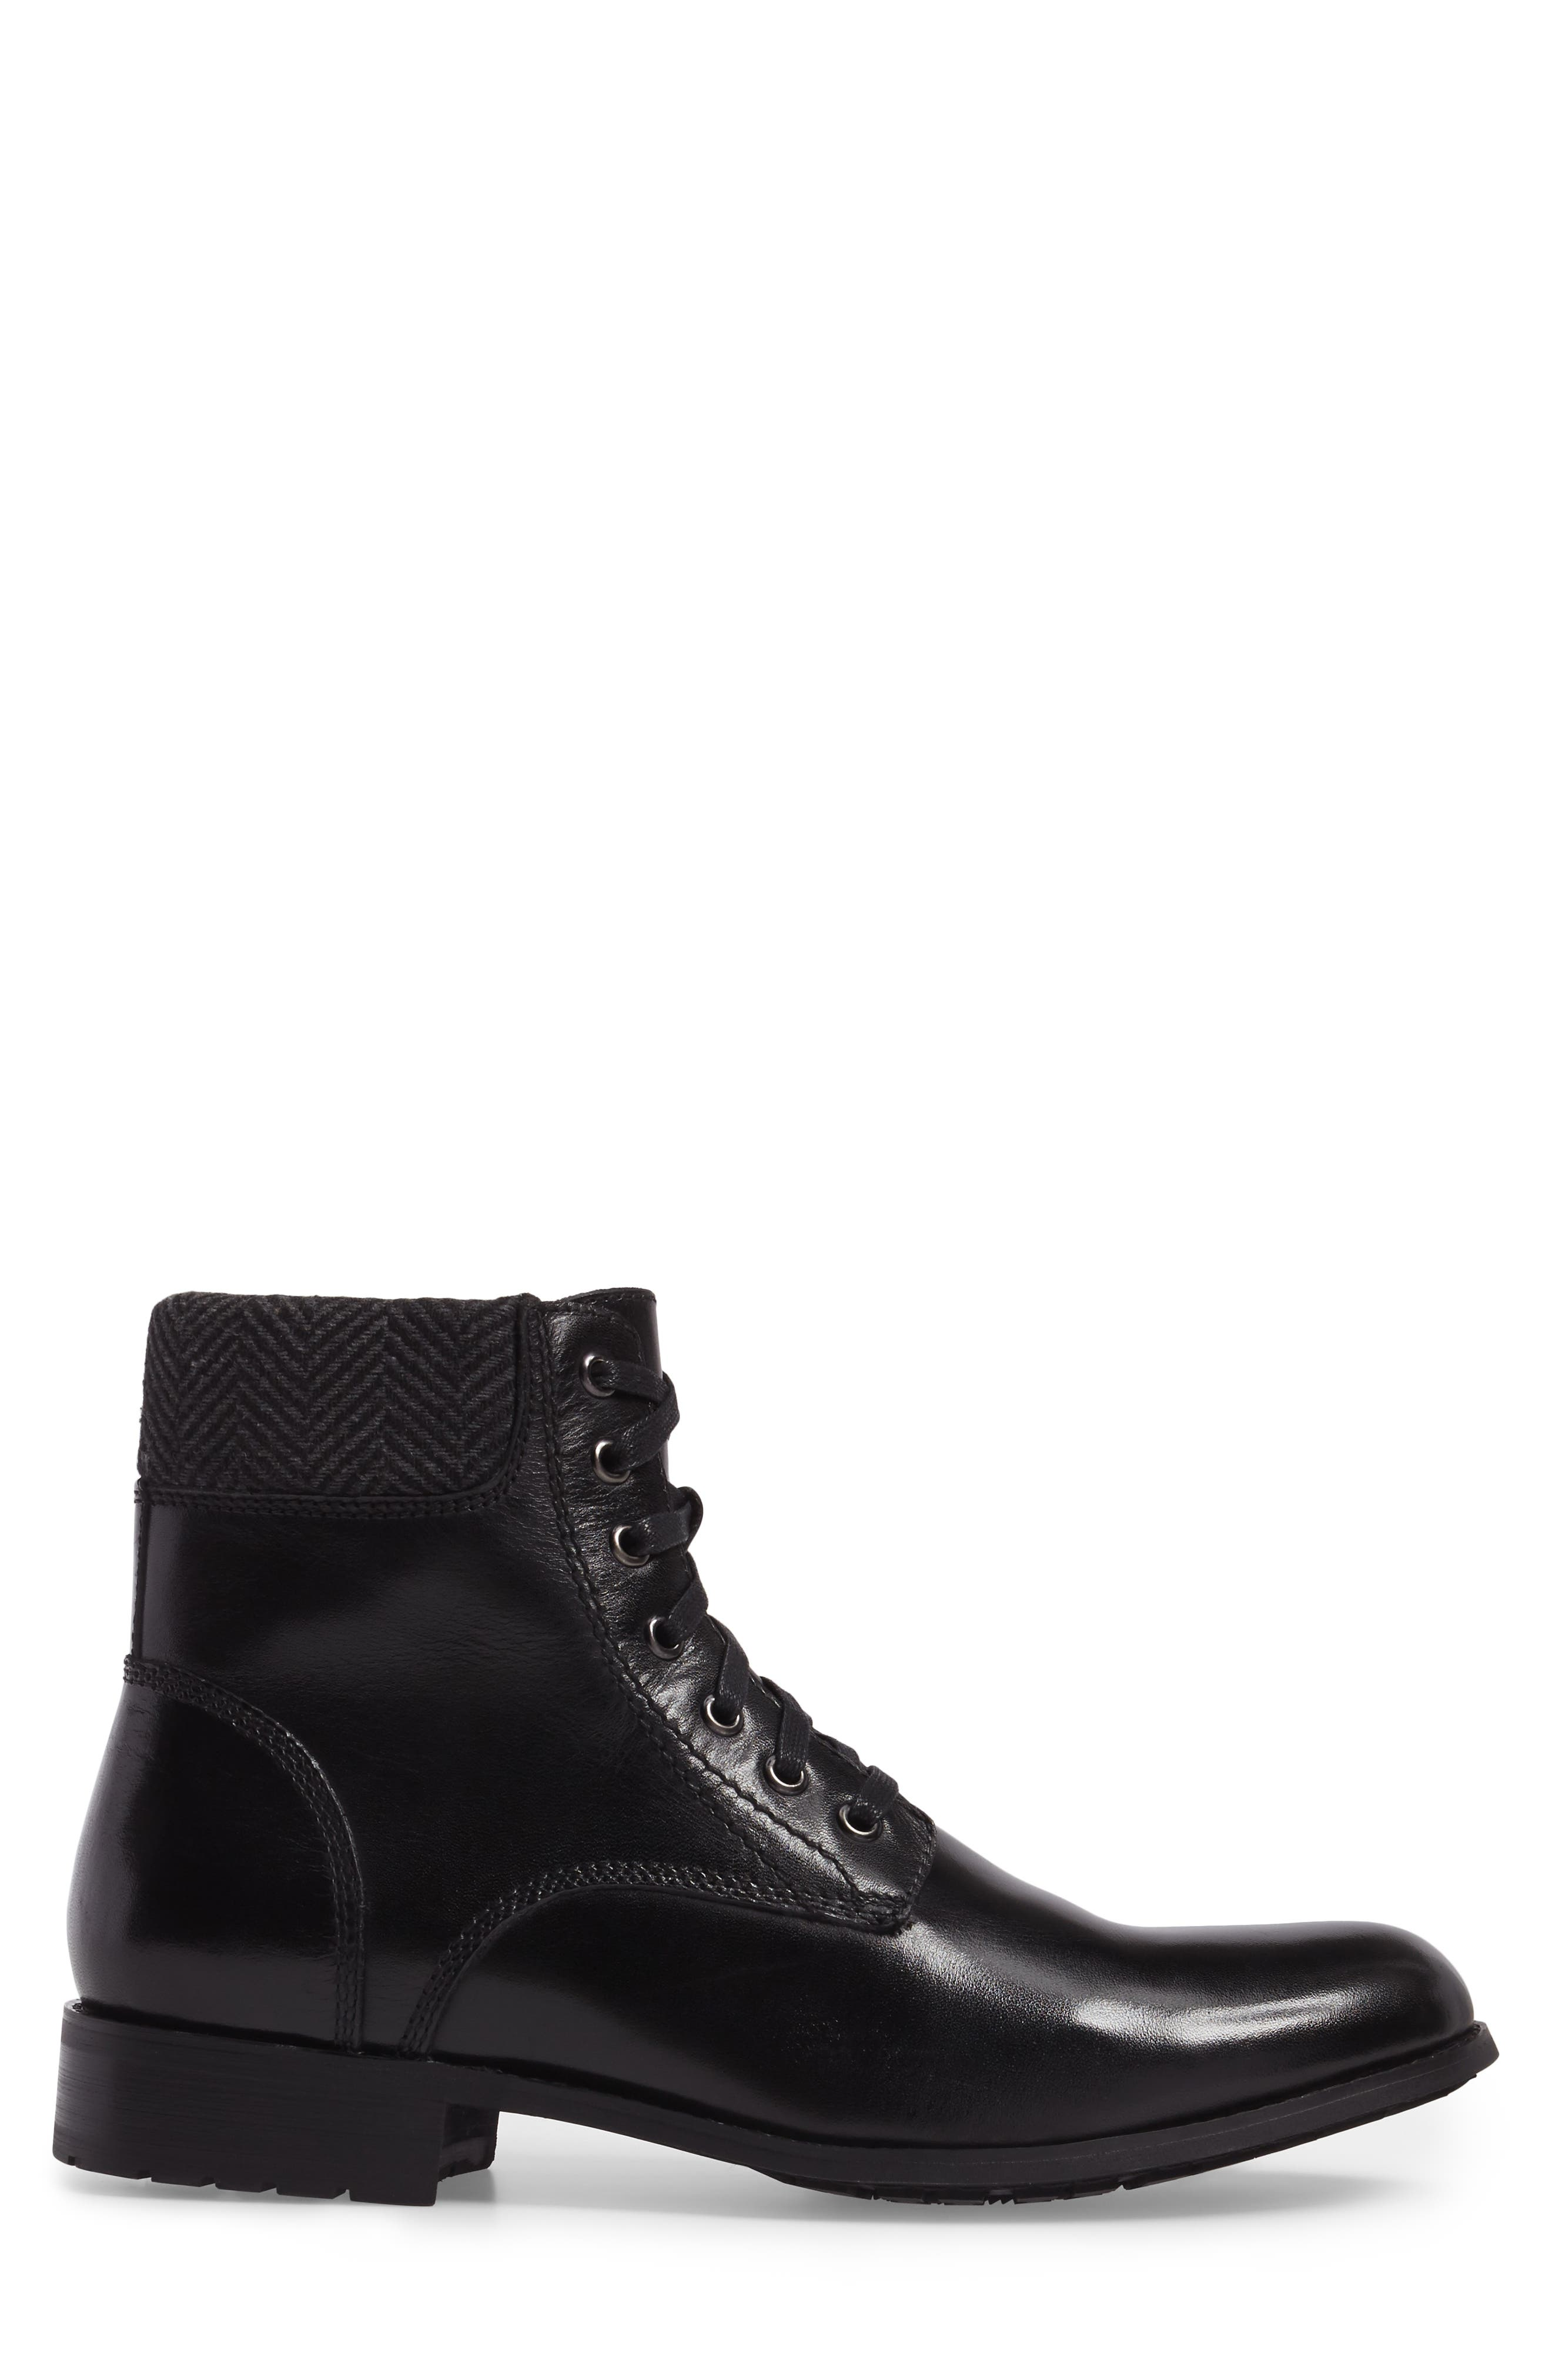 Saar Plain Toe Boot,                             Alternate thumbnail 3, color,                             001